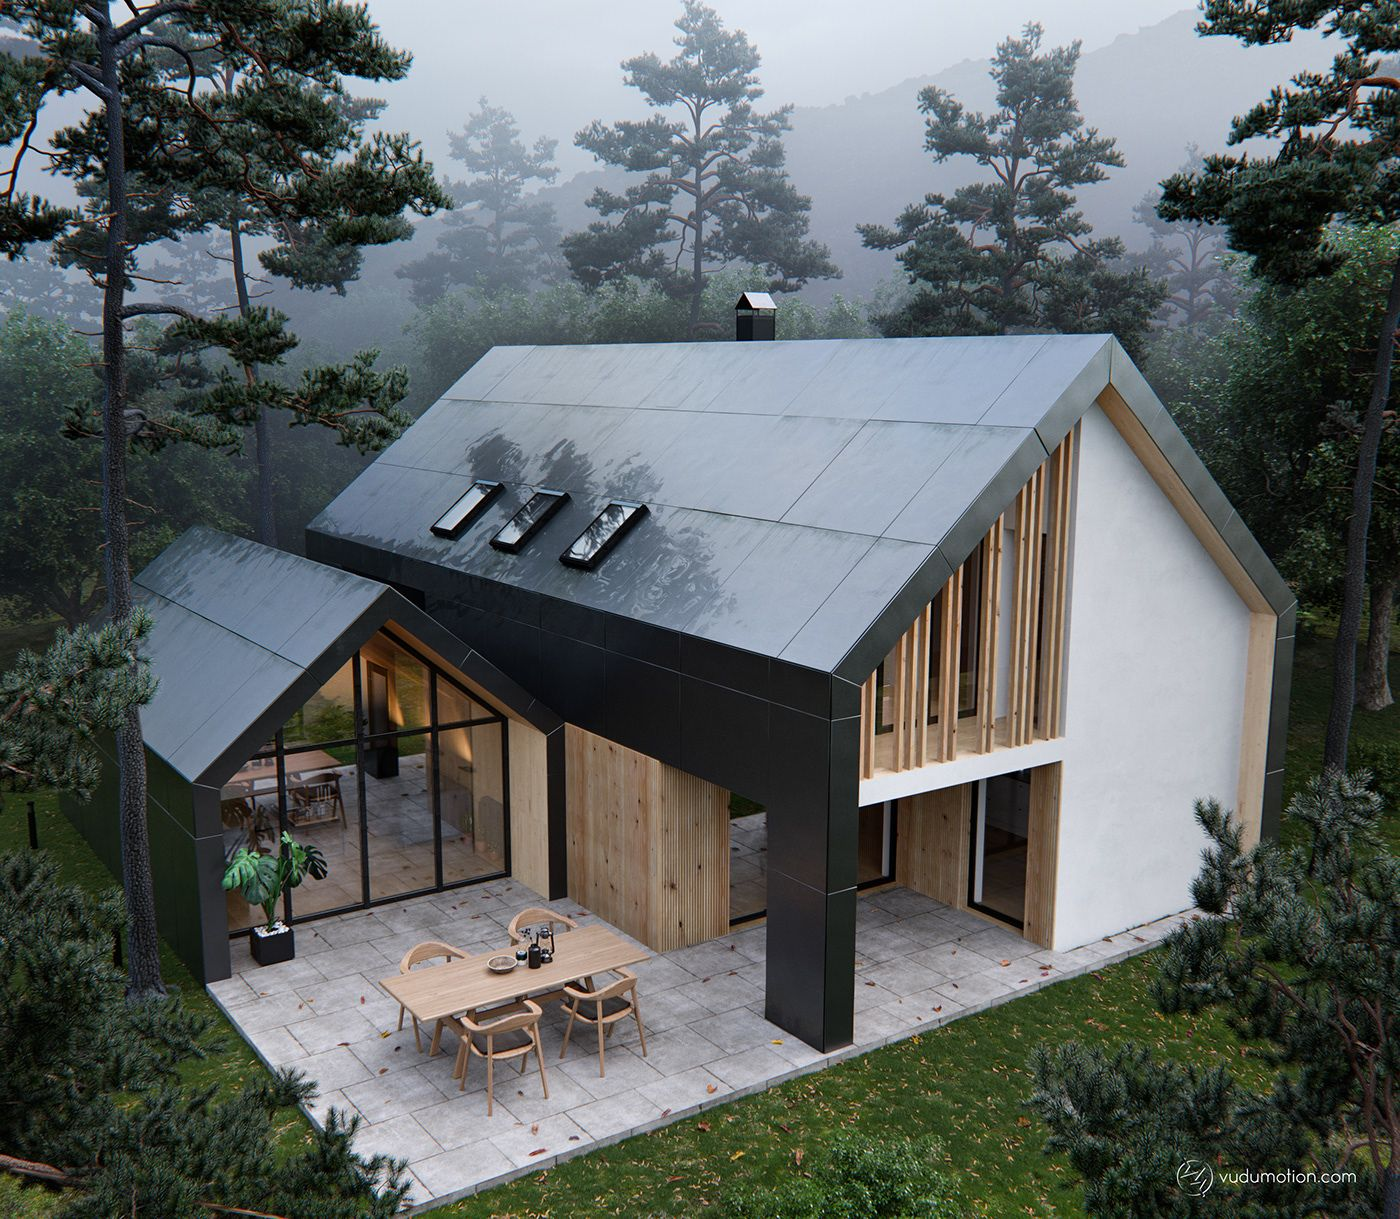 Portfolio Modern Home Design: Showcase And Discover The Latest Work From Top Online